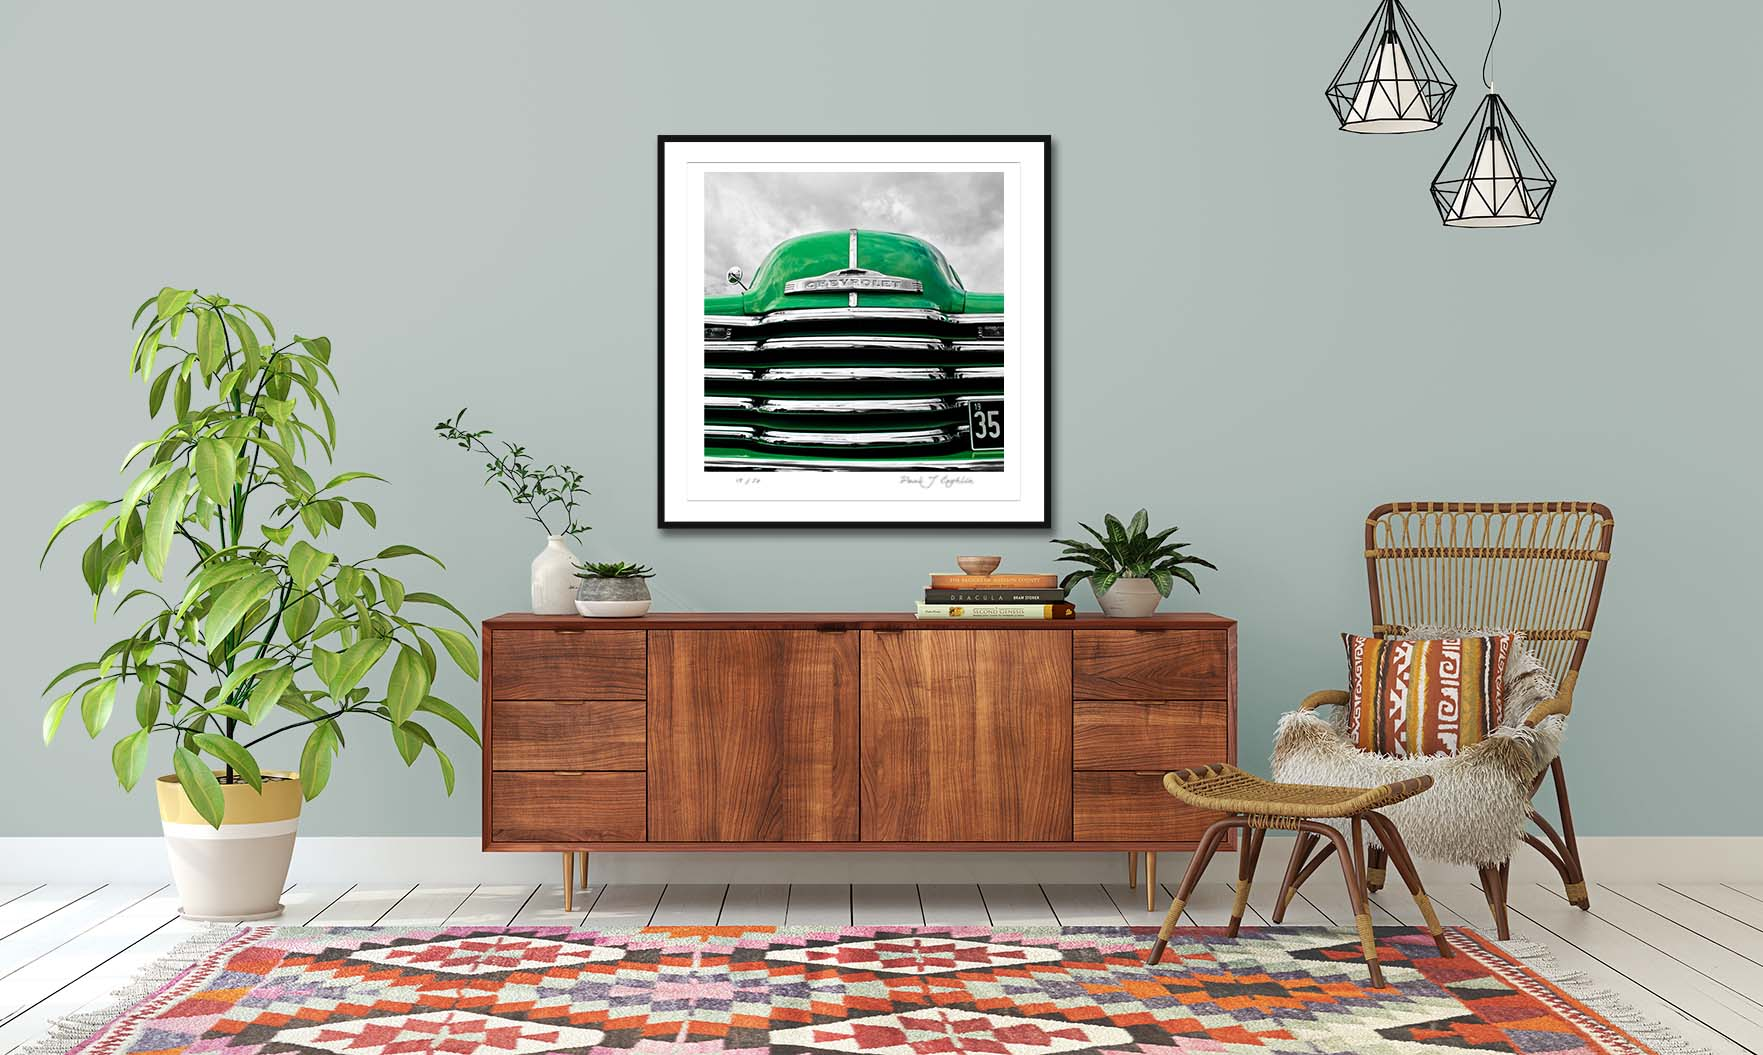 HR05 Green Chevy. A colour abstract photographic prints of a 1952 Chevrolet 3100 by fine art photographer Paul Coghlin. Limited edition photographic prints.